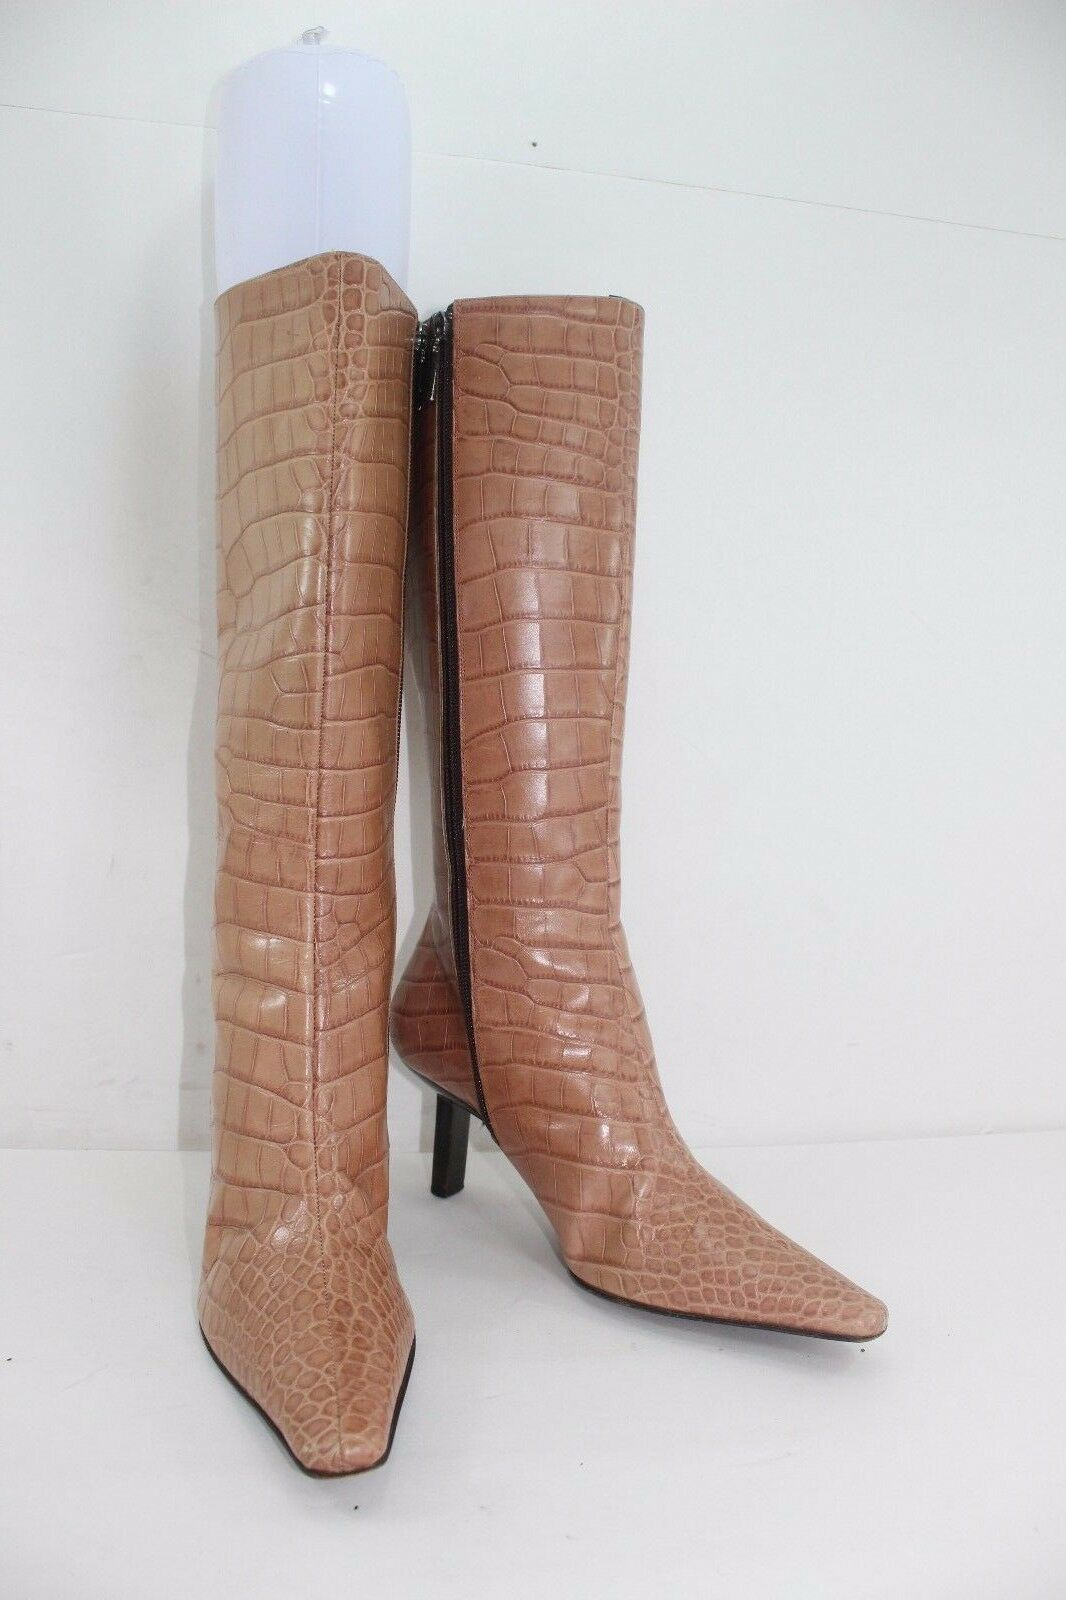 BRUNO MAGLI CROC EMBOSSED BROW BROW BROW SIZE 37 1 2 US SZ 7 MADE IN ITALY IN GREAT CONDIT 4d2575